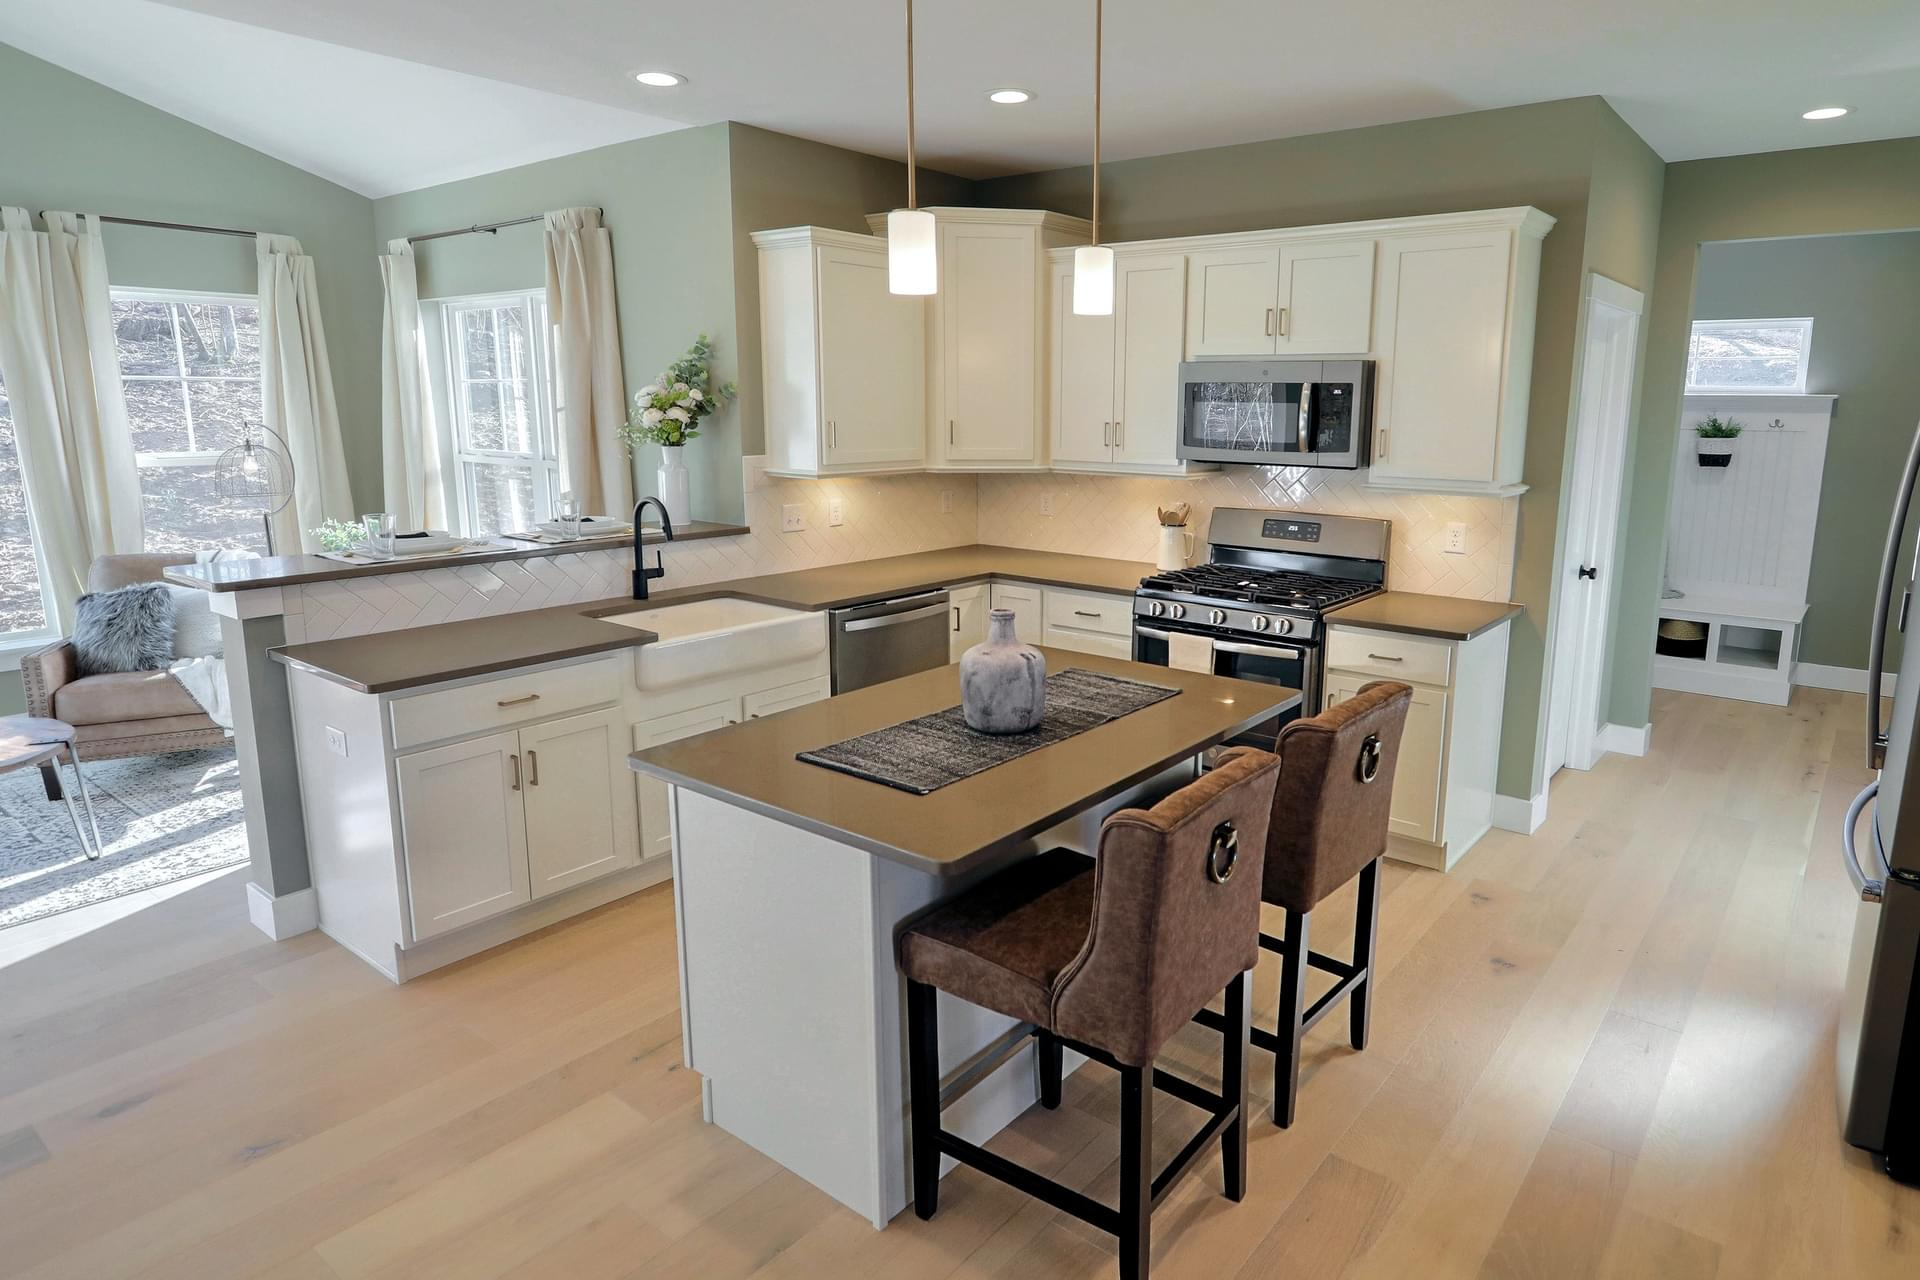 4br New Home in Pottstown, PA